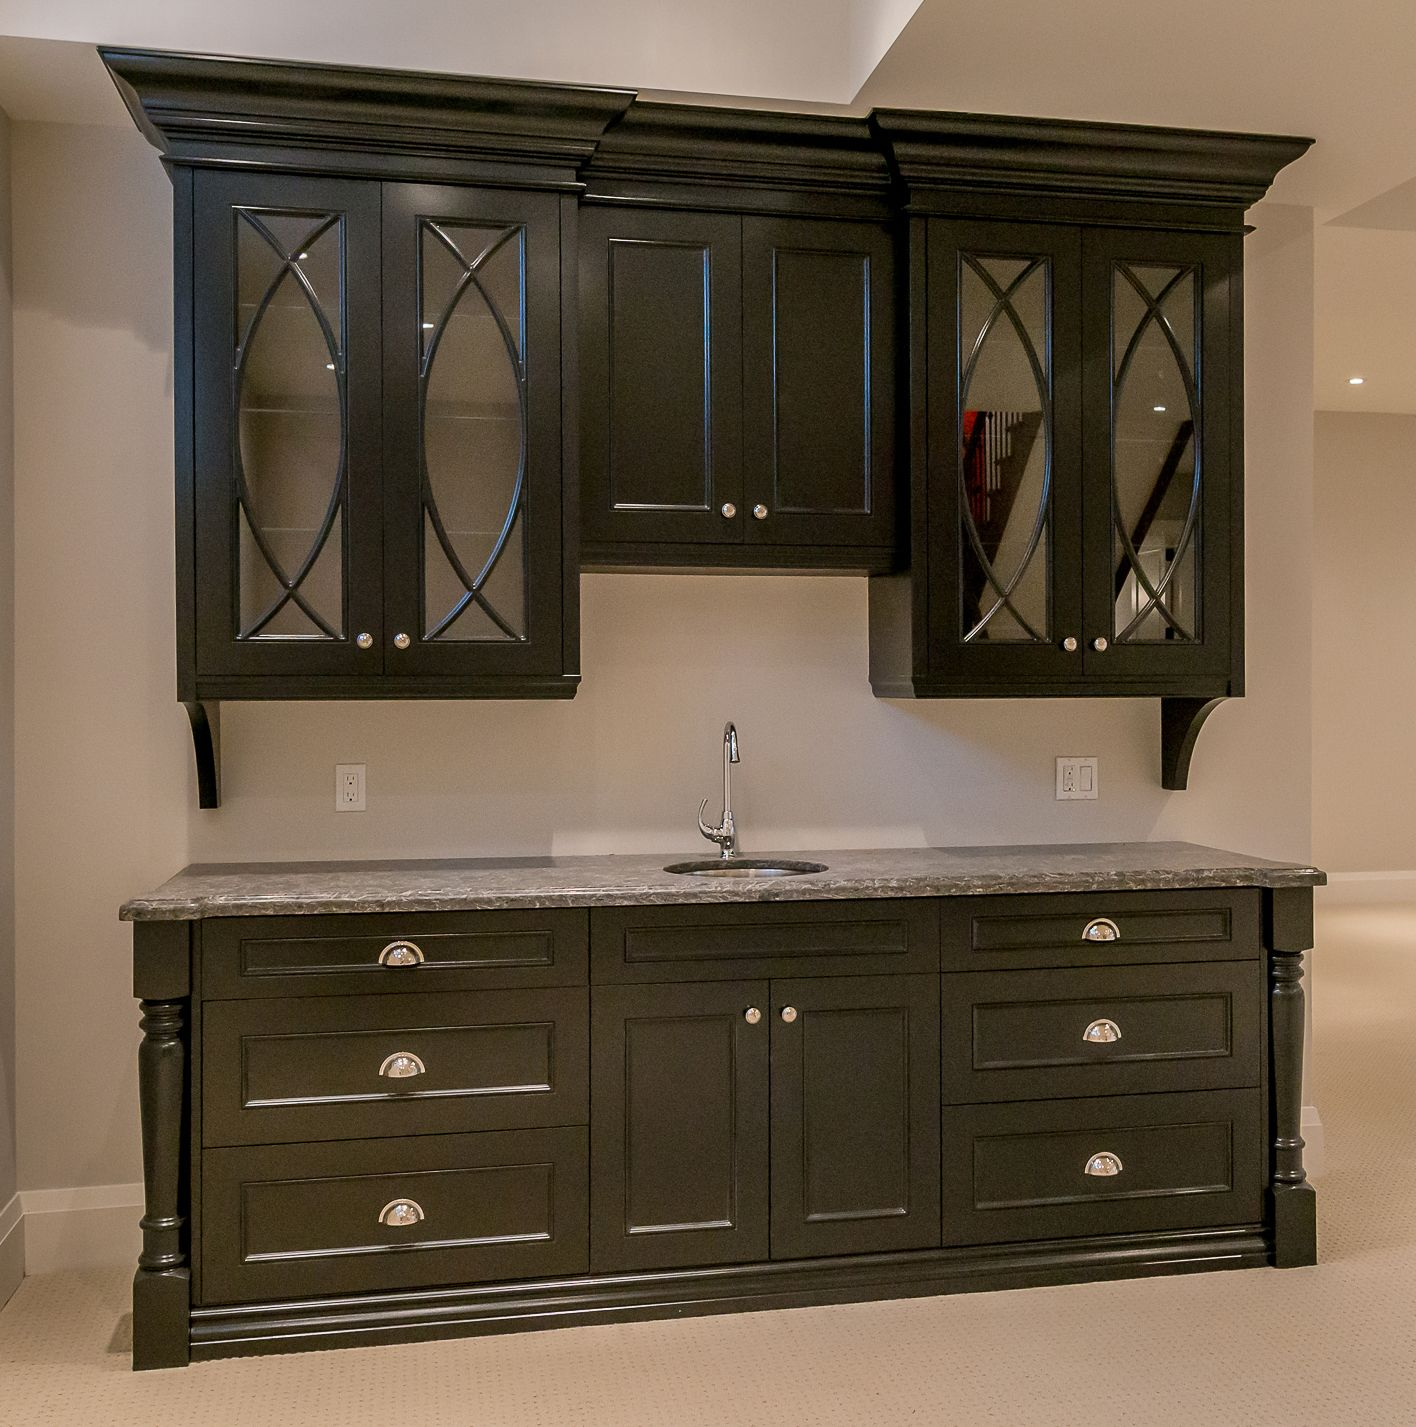 Prasada Kitchens And Fine Cabinetry: Basement Bar. Black Cabinetry. Luxury. (With Images